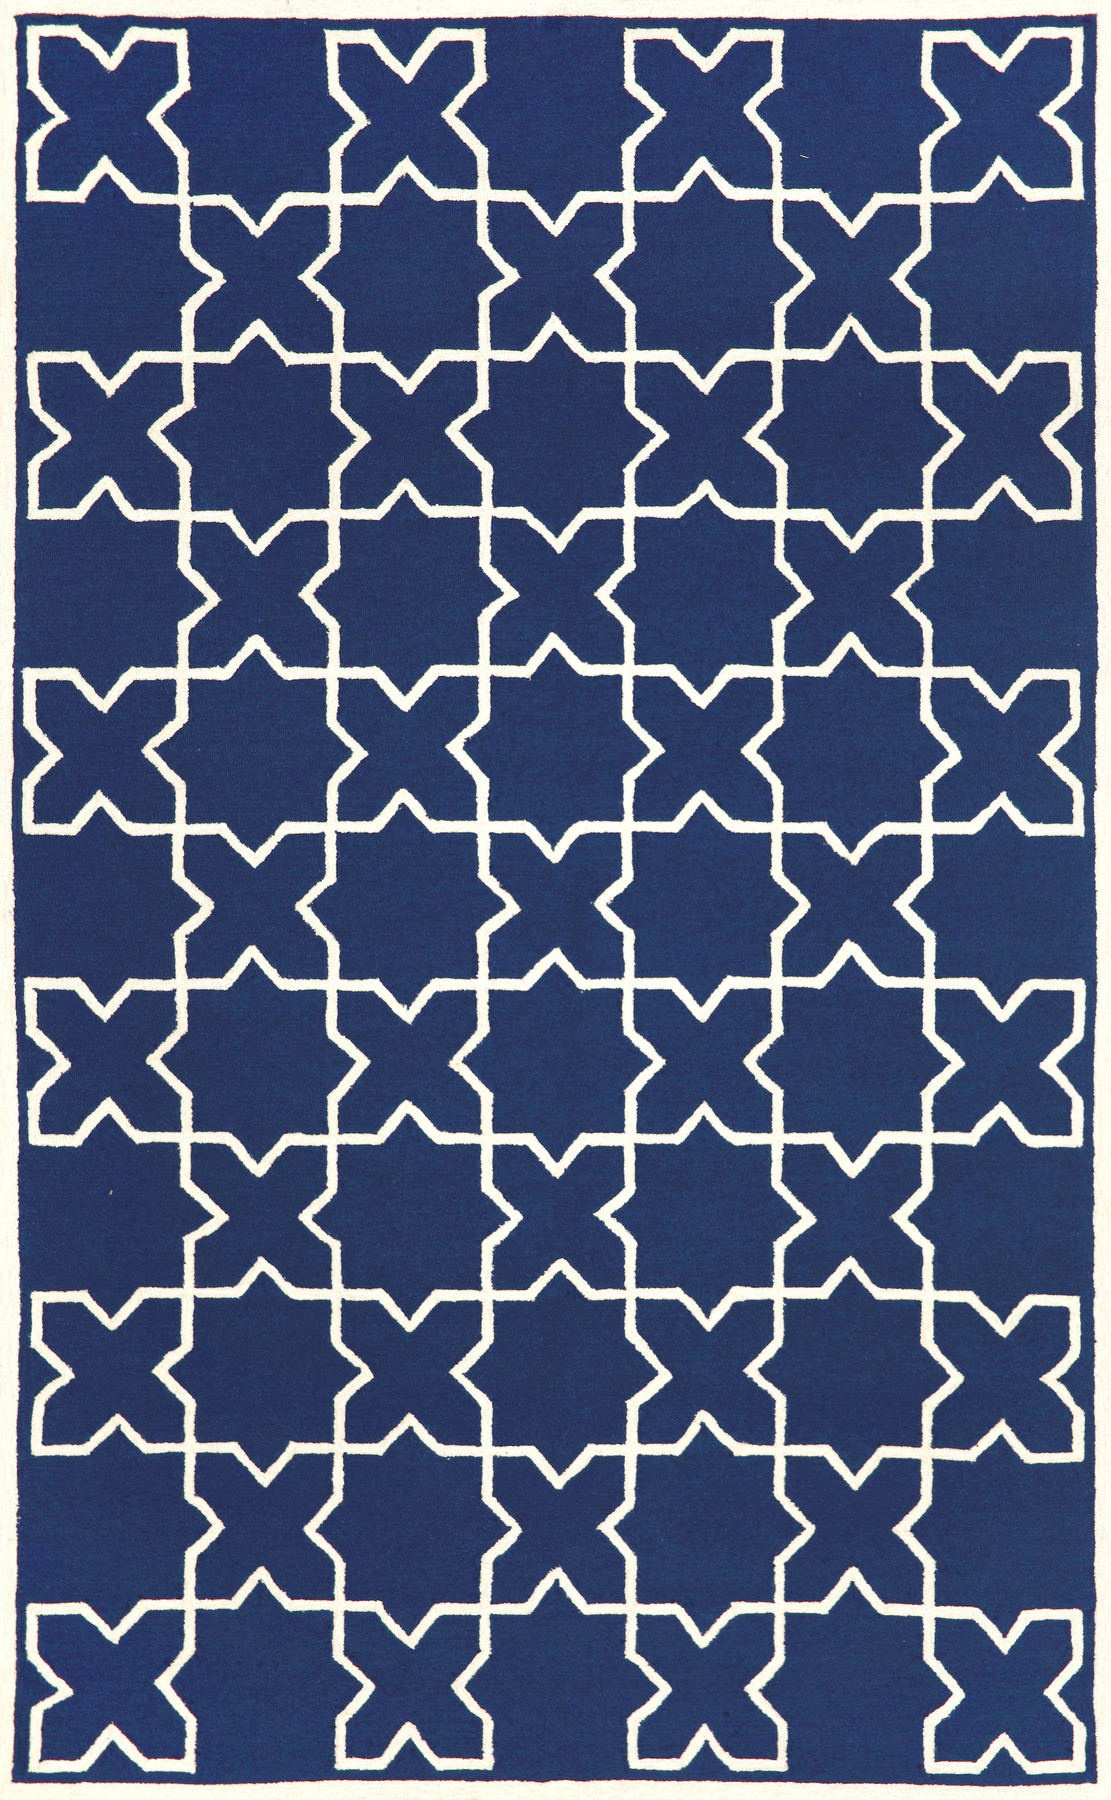 Cute moroccan tile for floor decor ideas with moroccan tile backsplash